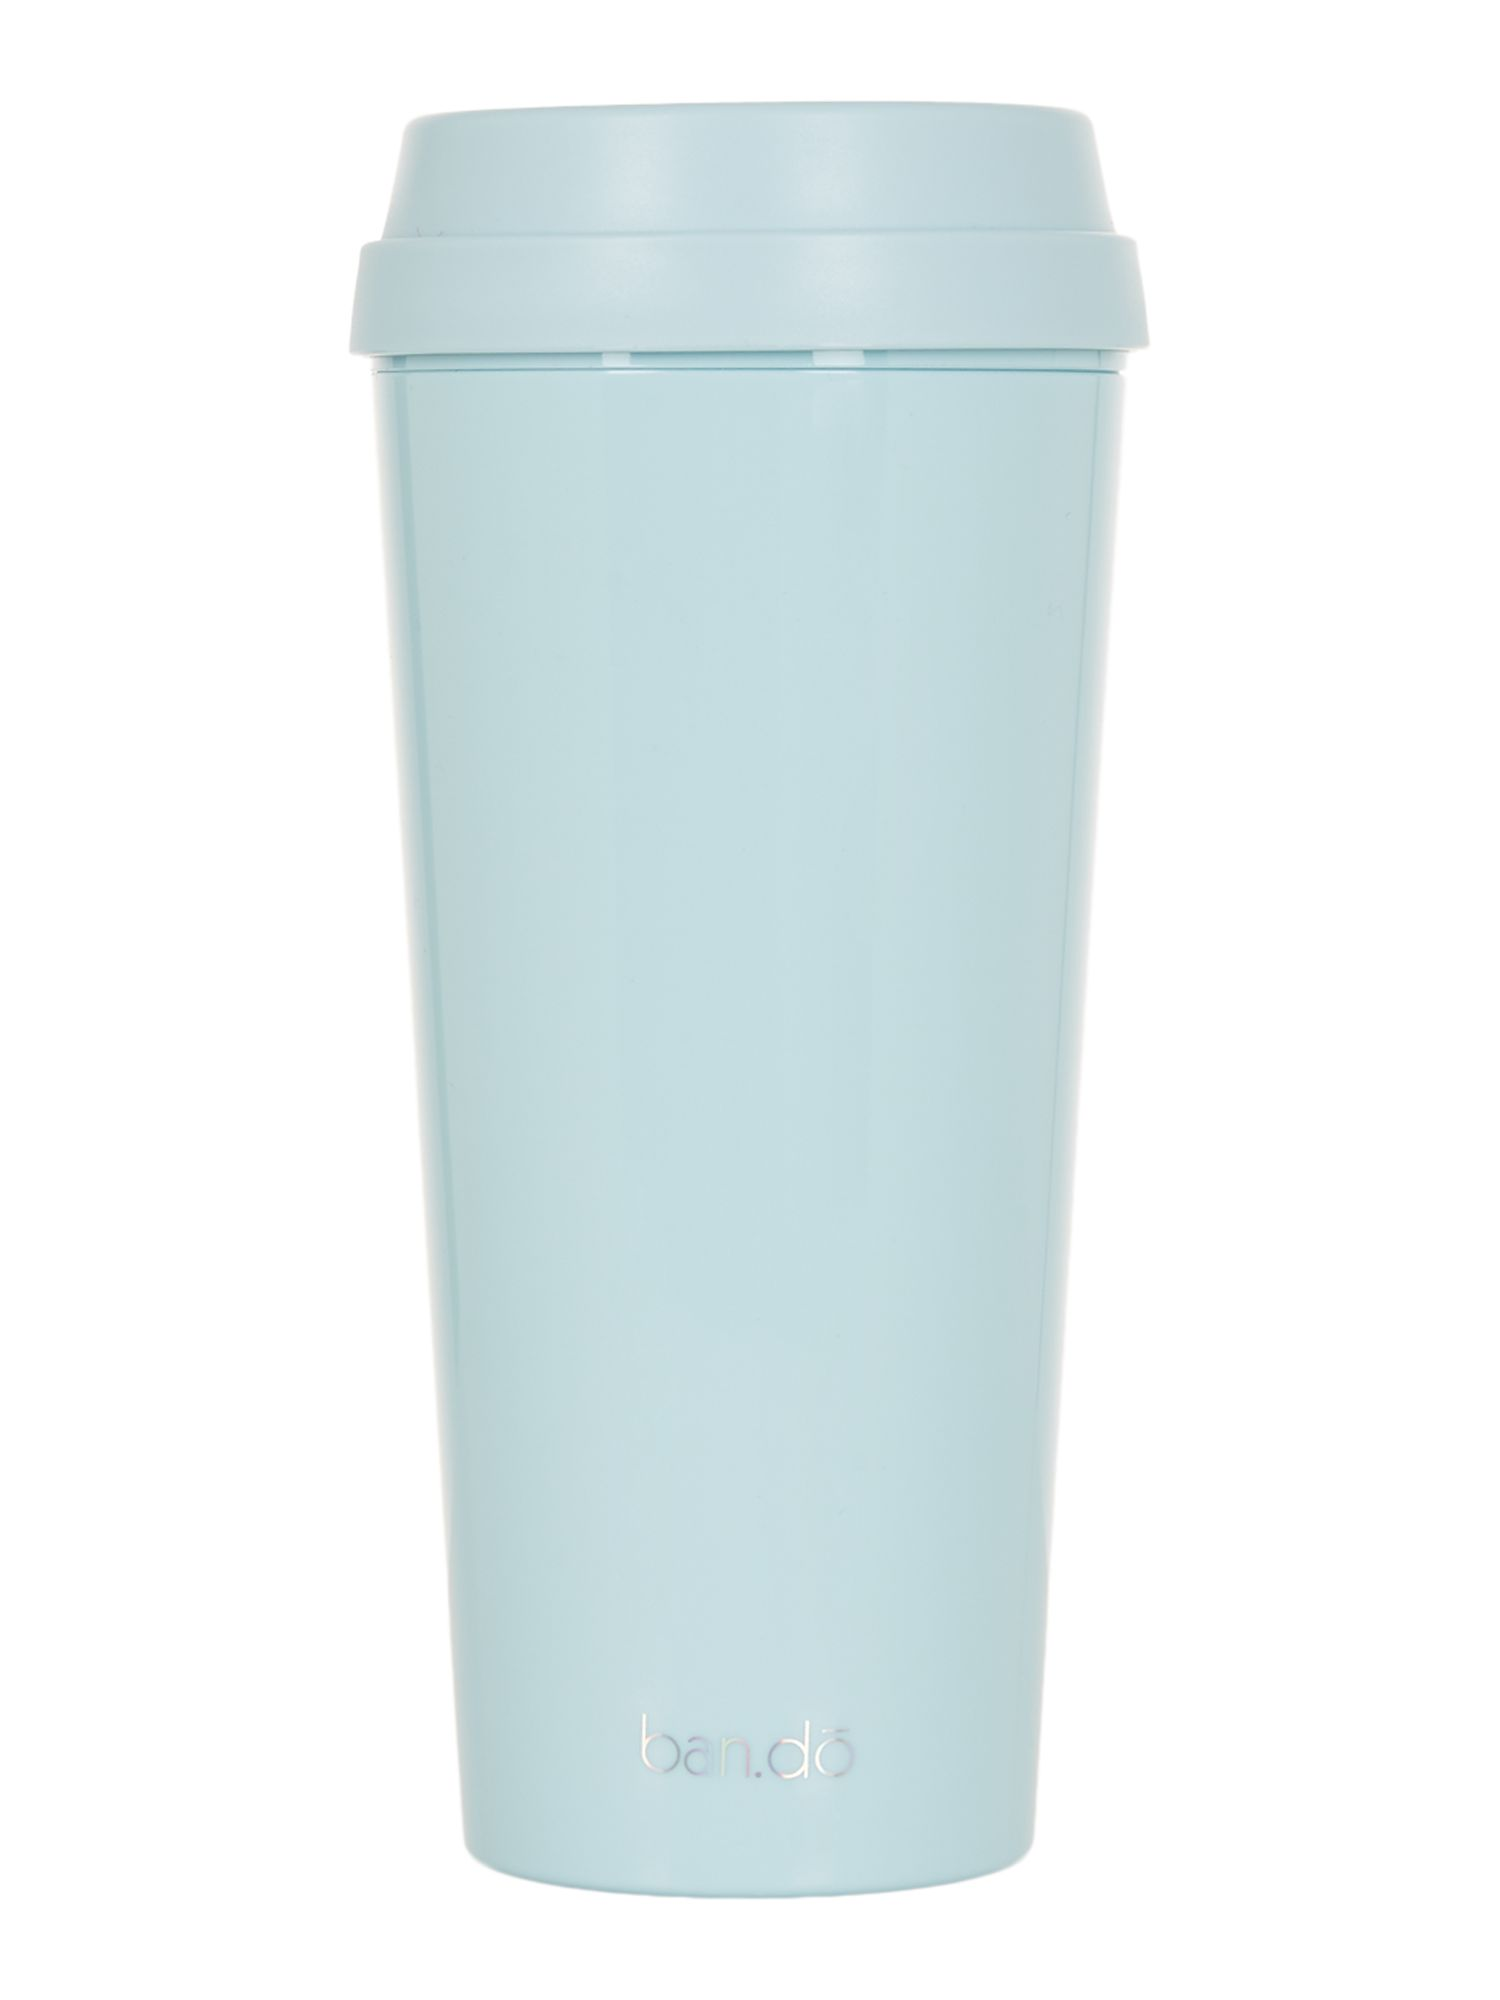 Image of Ban.do I am very busy hot stuff thermal mug